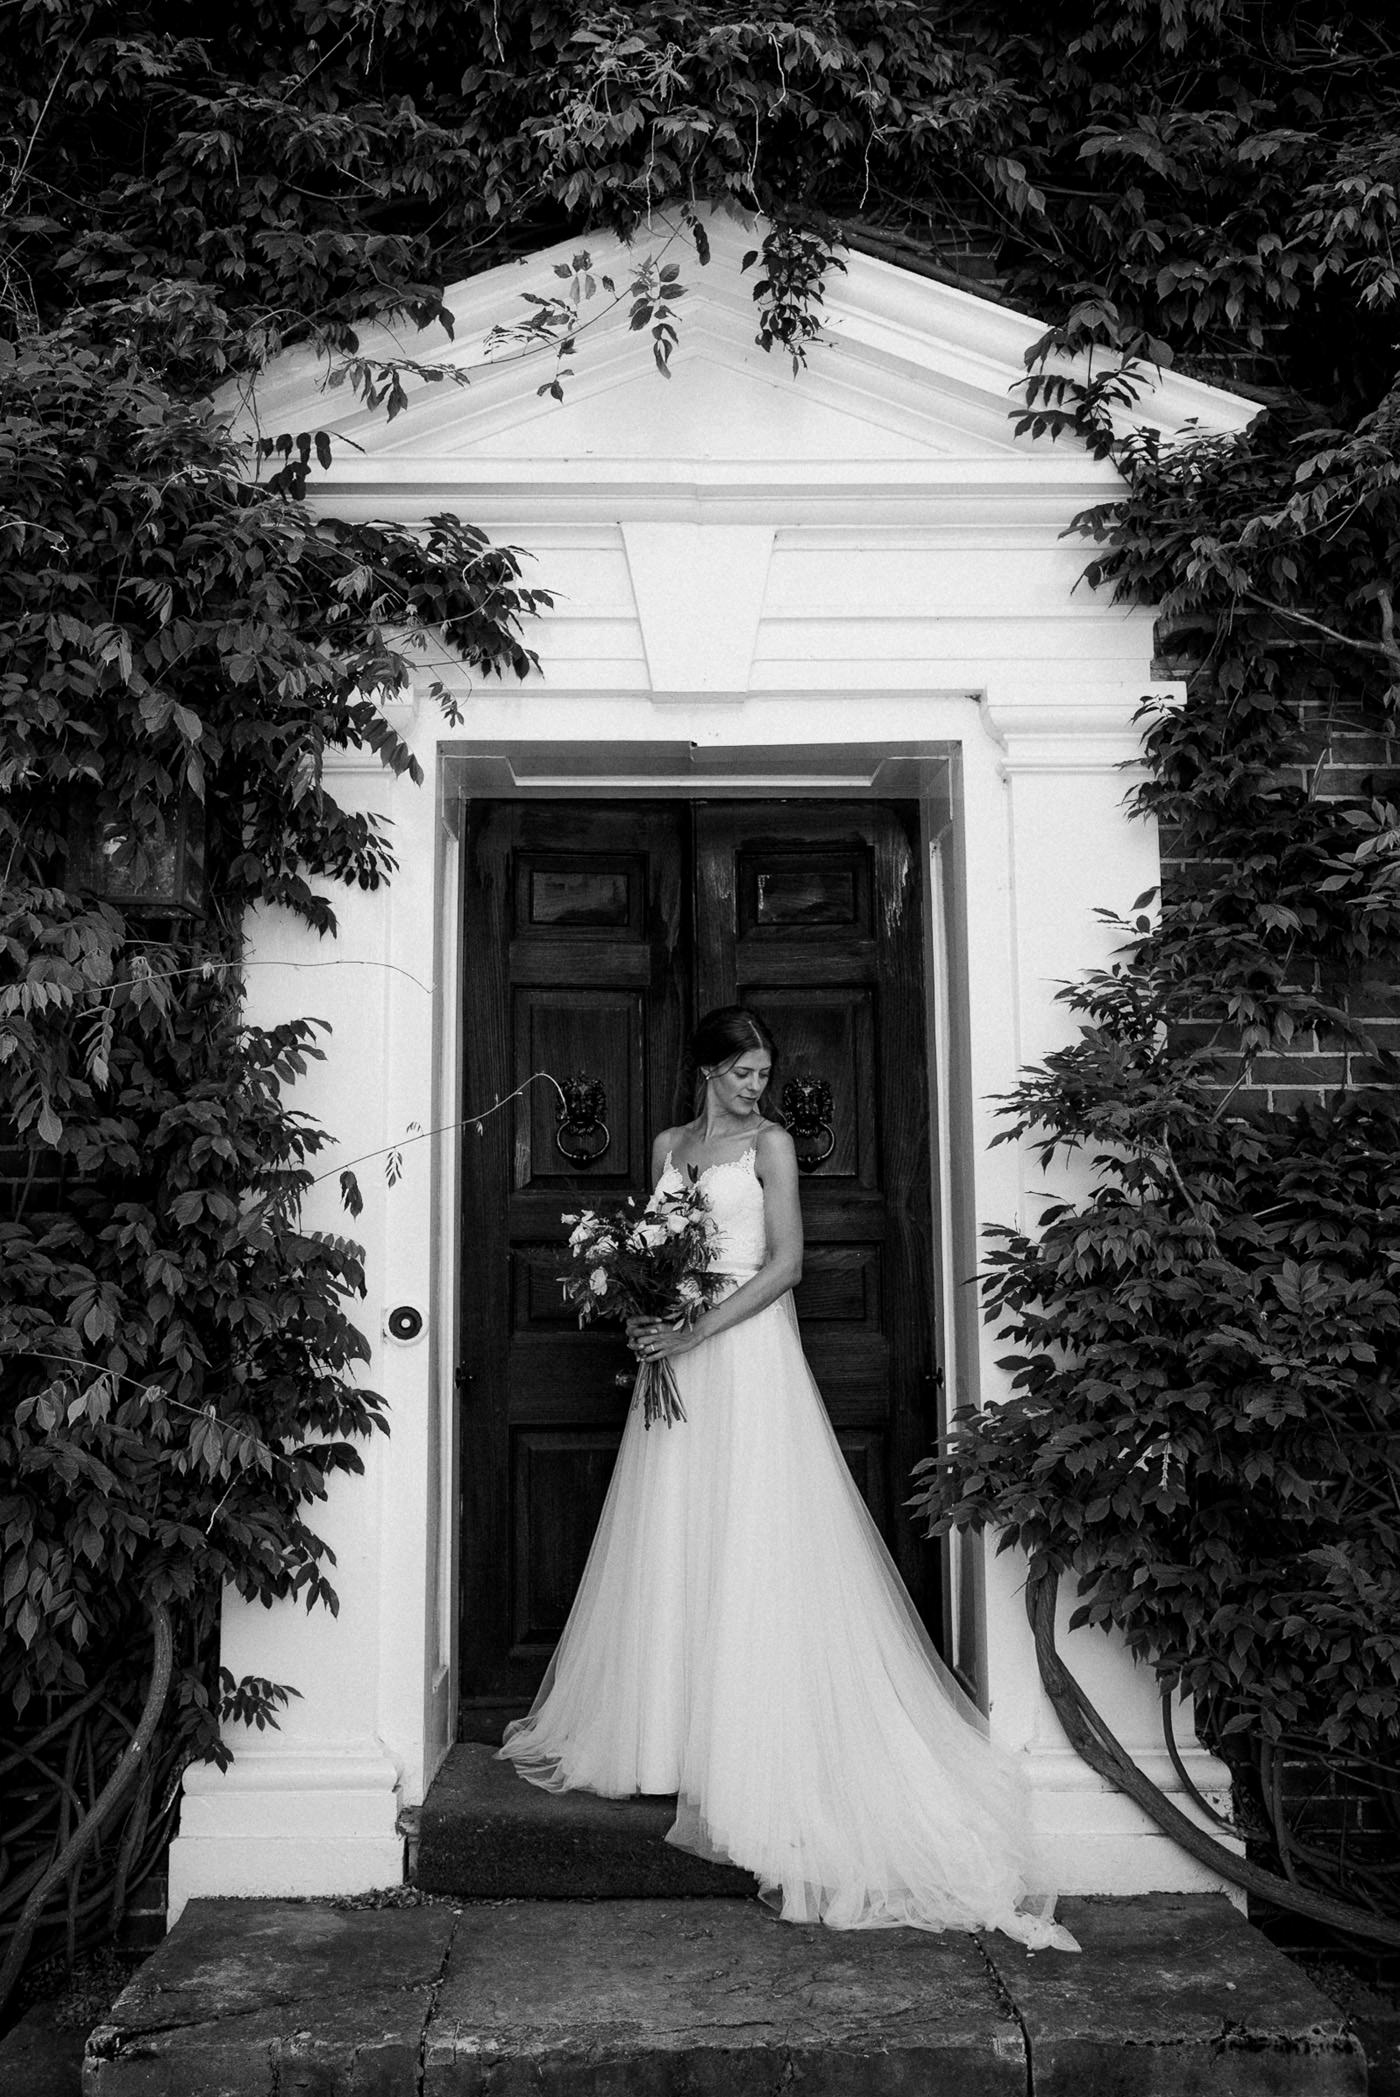 Sprivers Mansion Wedding classic bridal portrait